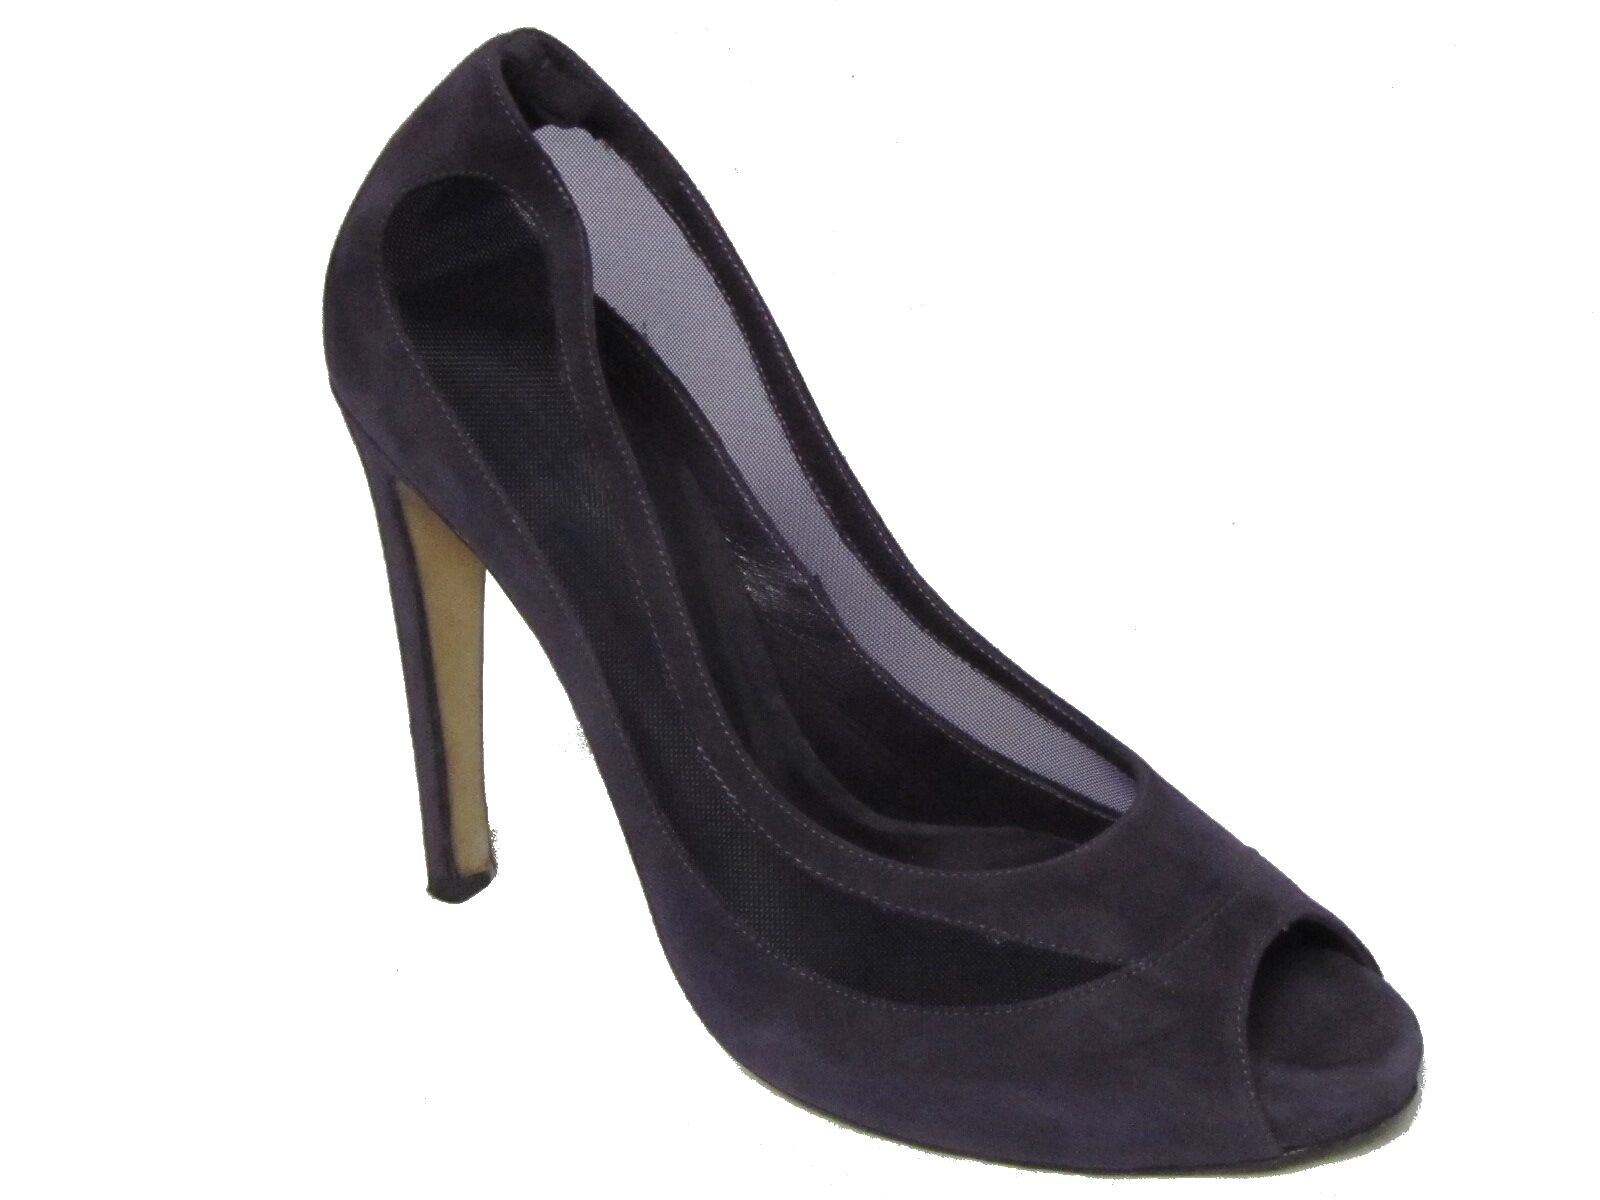 TANIA SPINELLI Italy Purple Peep Suede Leather Mesh Netting Peep Purple Toe Pumps Shoes 39 9 b85b75